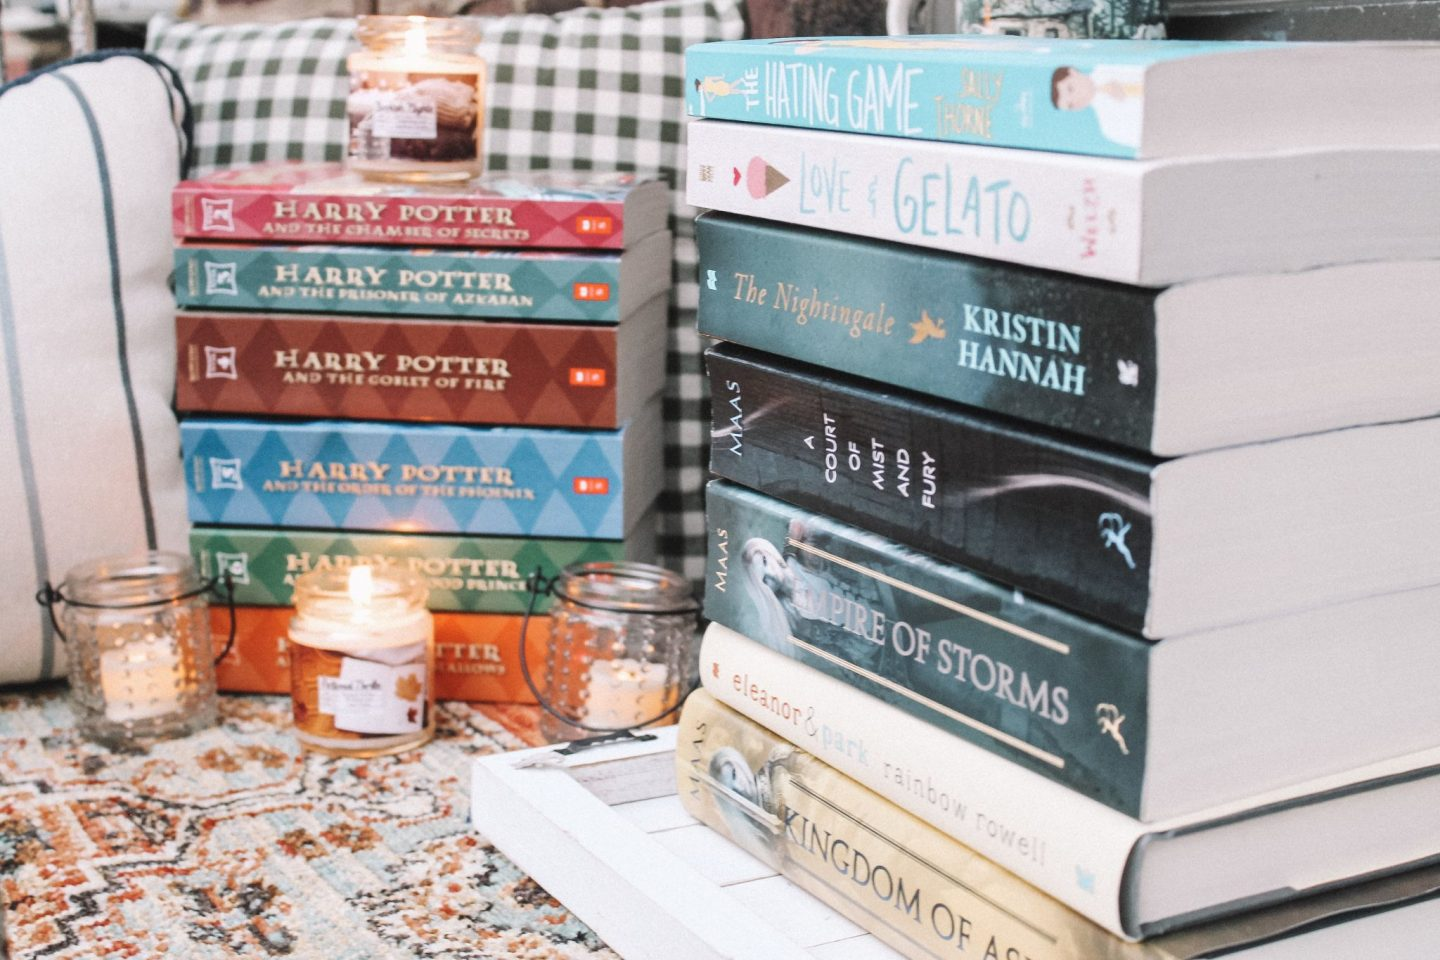 roses, flowers, bookstack, young adult, fantasy, ya, girl reading, woman reading, fire escape, reading on fire escape, books, young adult, flowers, candles, bookish candles, cozy while reading, bookworm, harry potter, gryffindor, sarah j. maas, throne of glass, kingdom of ash, j.k rowling, reading on fire escape, reading in new york, New York, nyc.